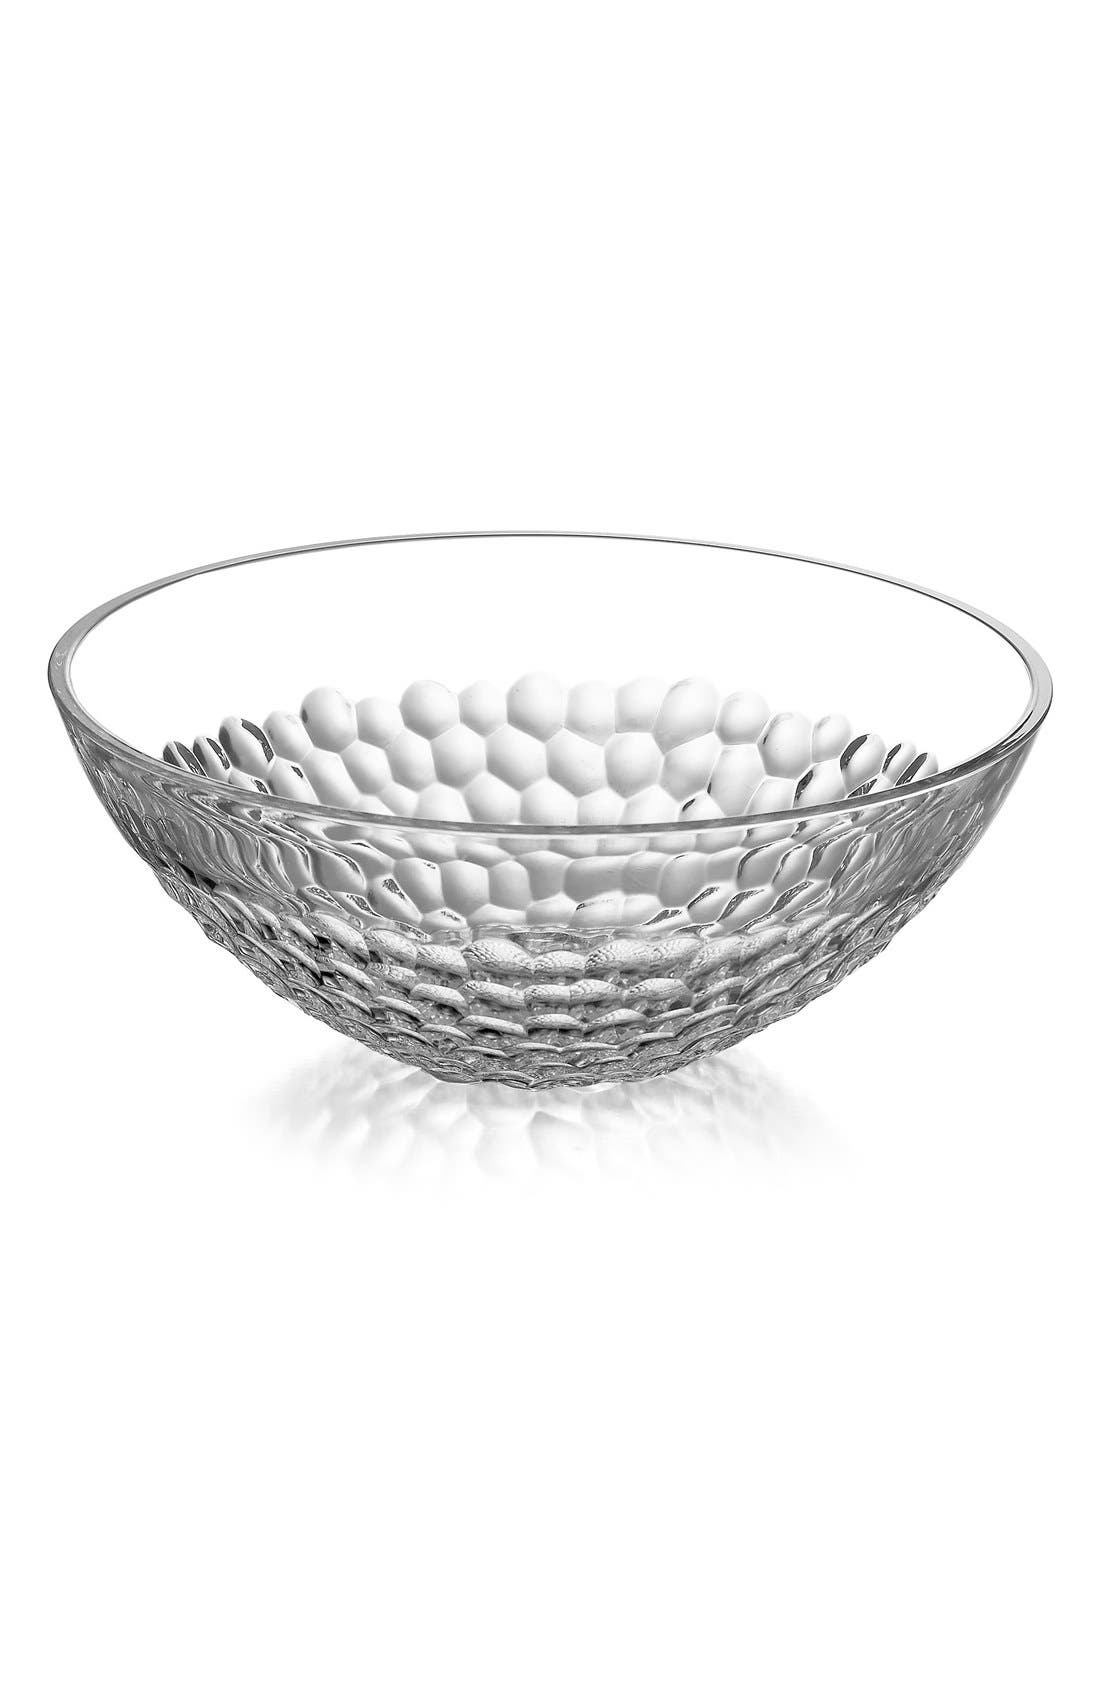 'Pearl' Lead Crystal Serving Bowl,                             Alternate thumbnail 2, color,                             100